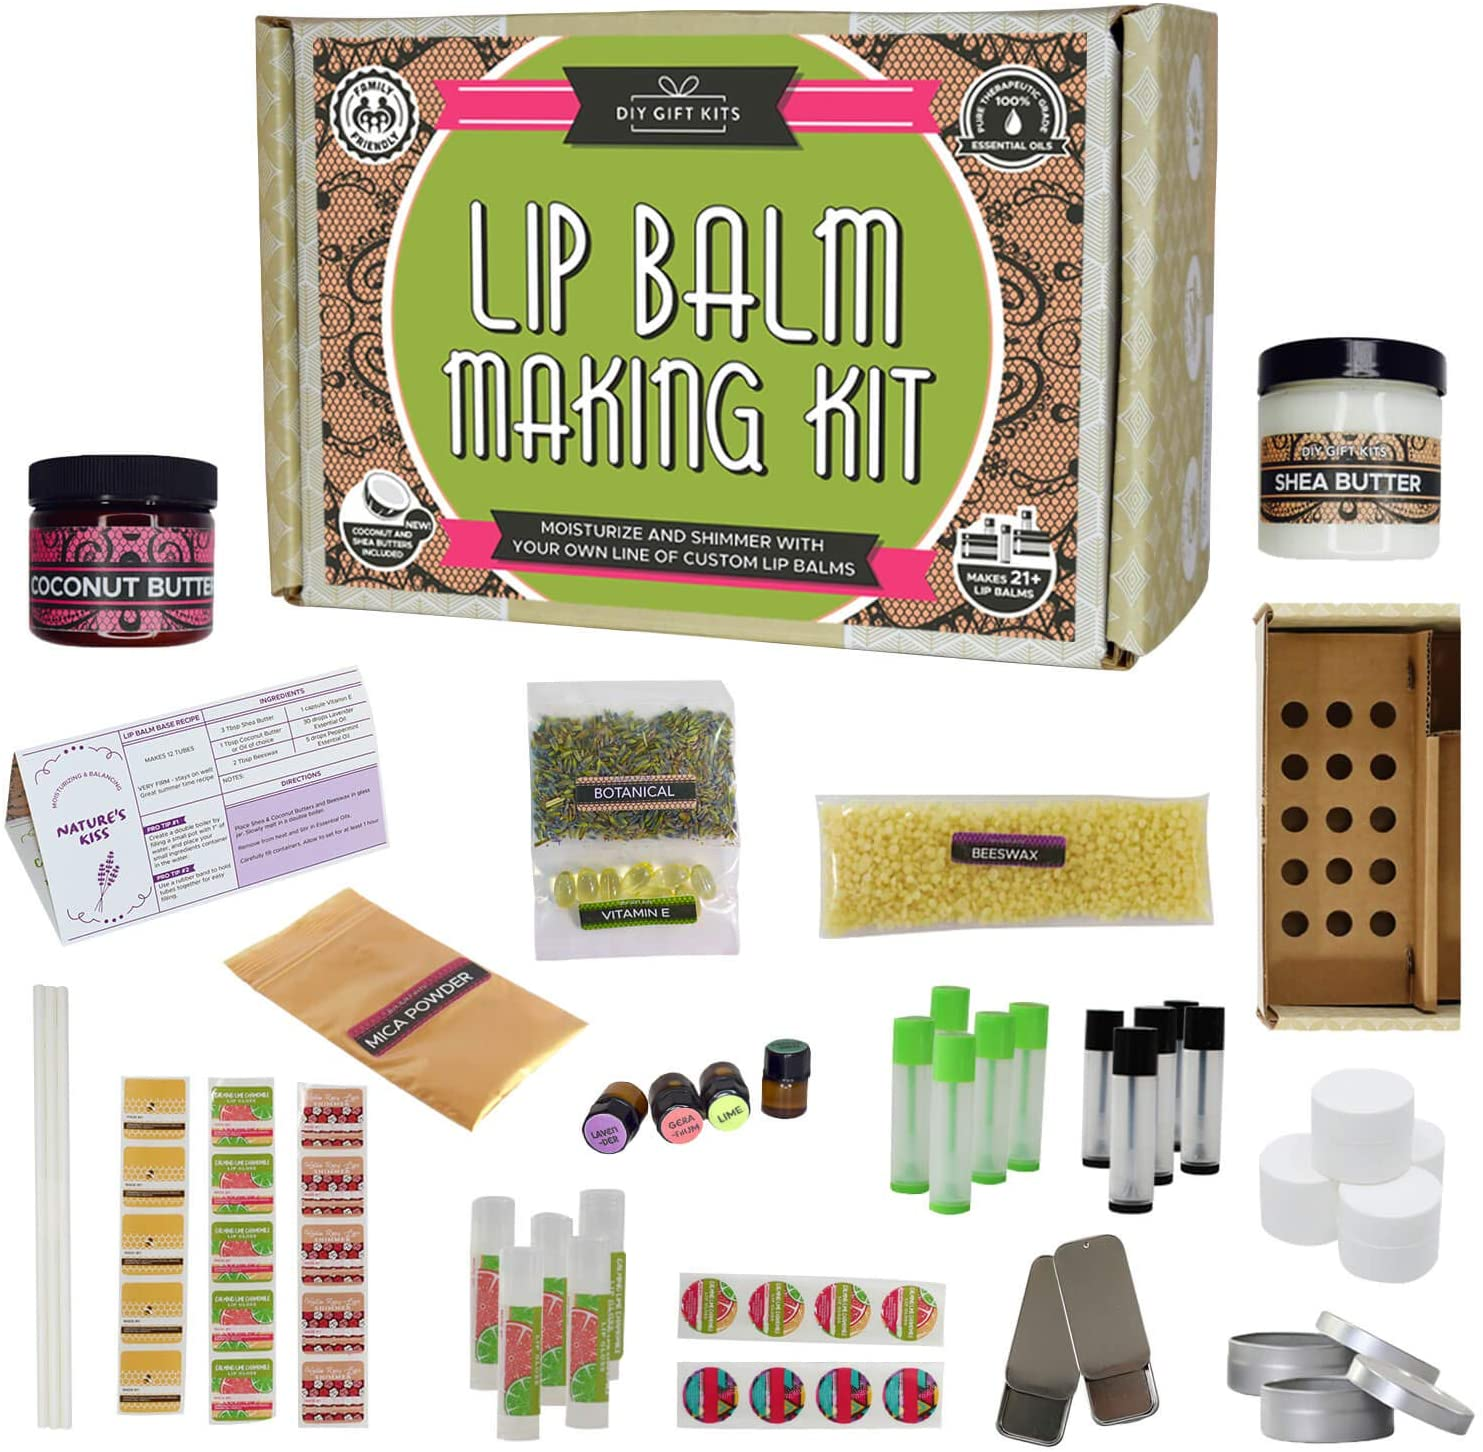 gifts-for-13-year-old-girls-lip-balm-kit